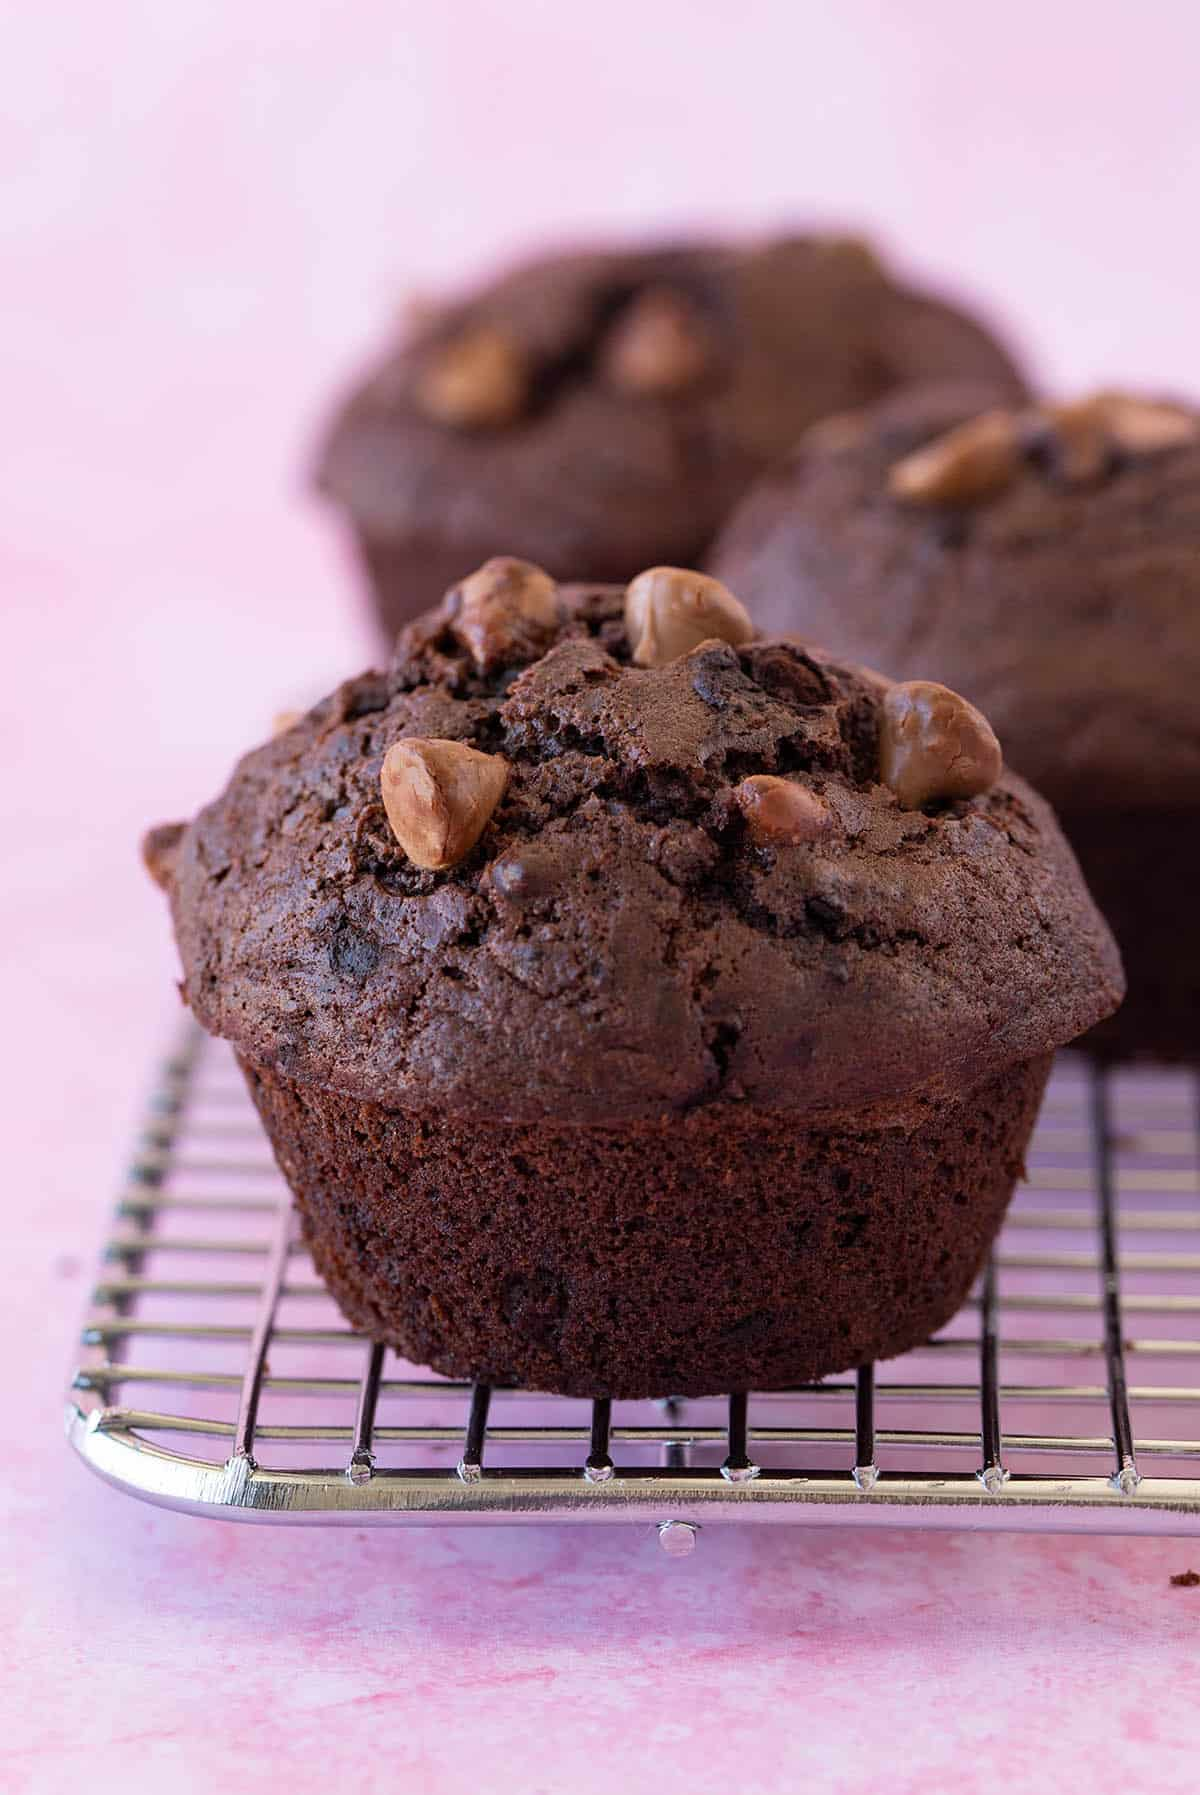 Close up of a homemade big chocolate muffin